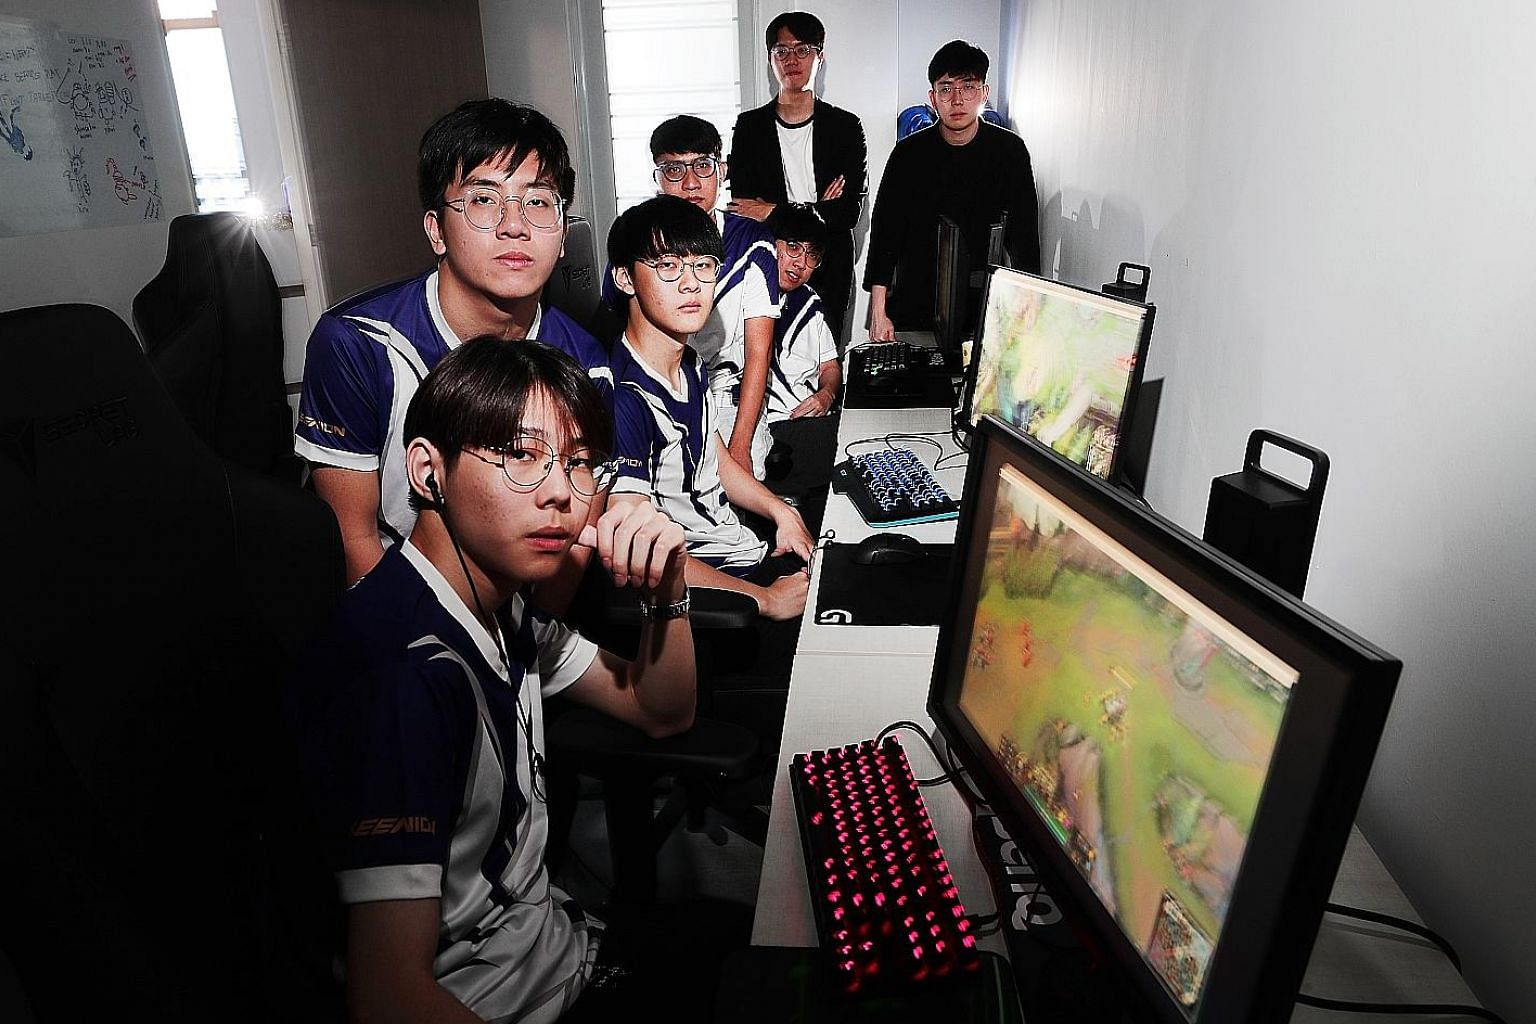 Singapore's growing legion of e-sports players include Resurgence's League Of Legends team members. ST FILE PHOTO